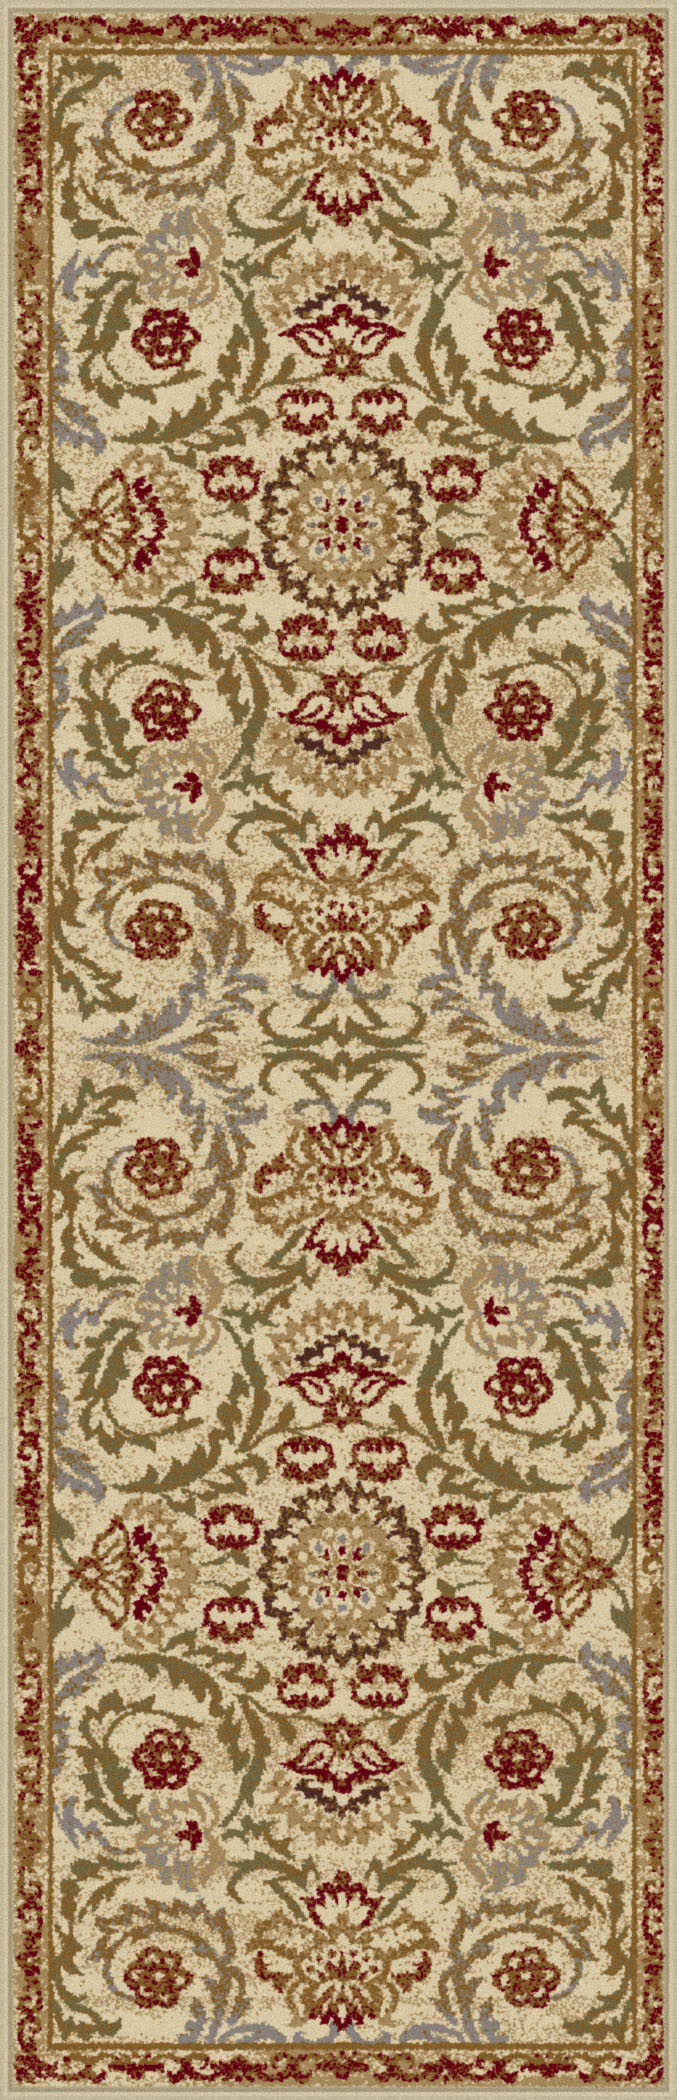 Impressions 7882 Beige Transitional Area Rug